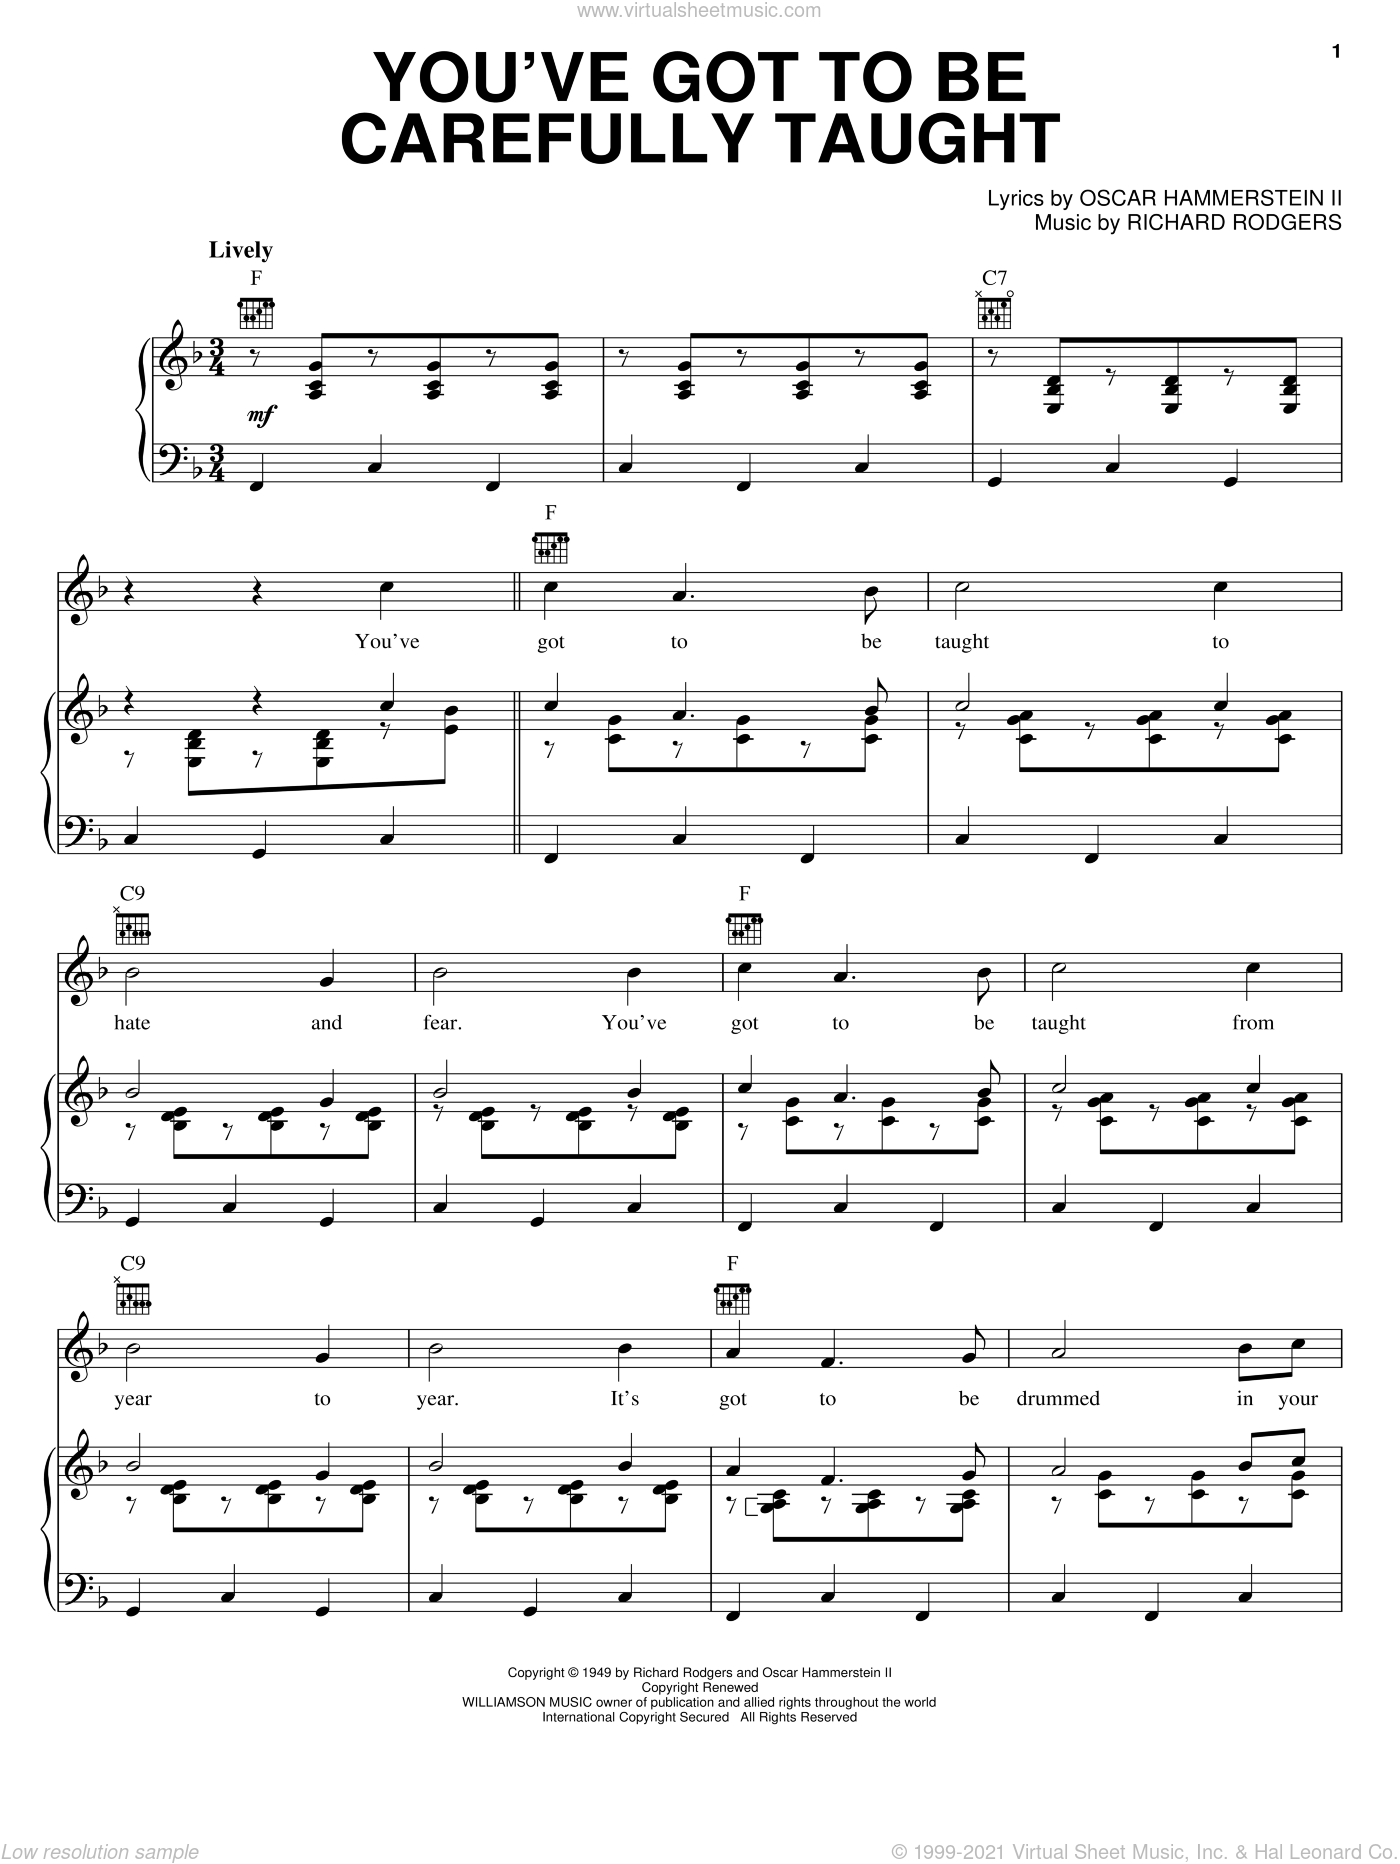 You've Got To Be Carefully Taught sheet music for voice, piano or guitar by Rodgers & Hammerstein, South Pacific (Musical), Oscar II Hammerstein and Richard Rodgers, intermediate skill level